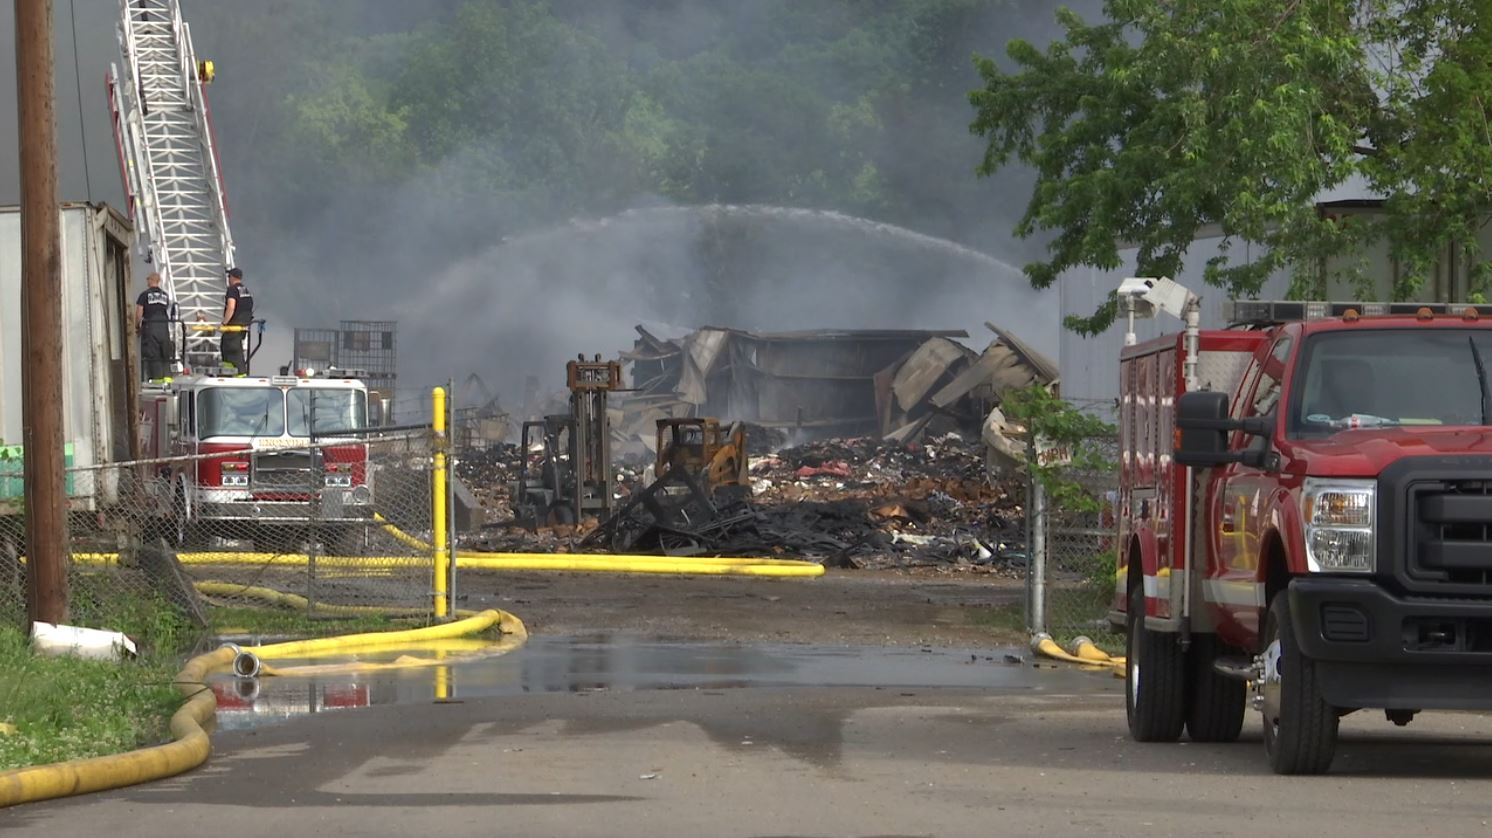 COVER PHOTO_Recycling Center fire debris with KFD_0503_1556856151439.JPG.jpg